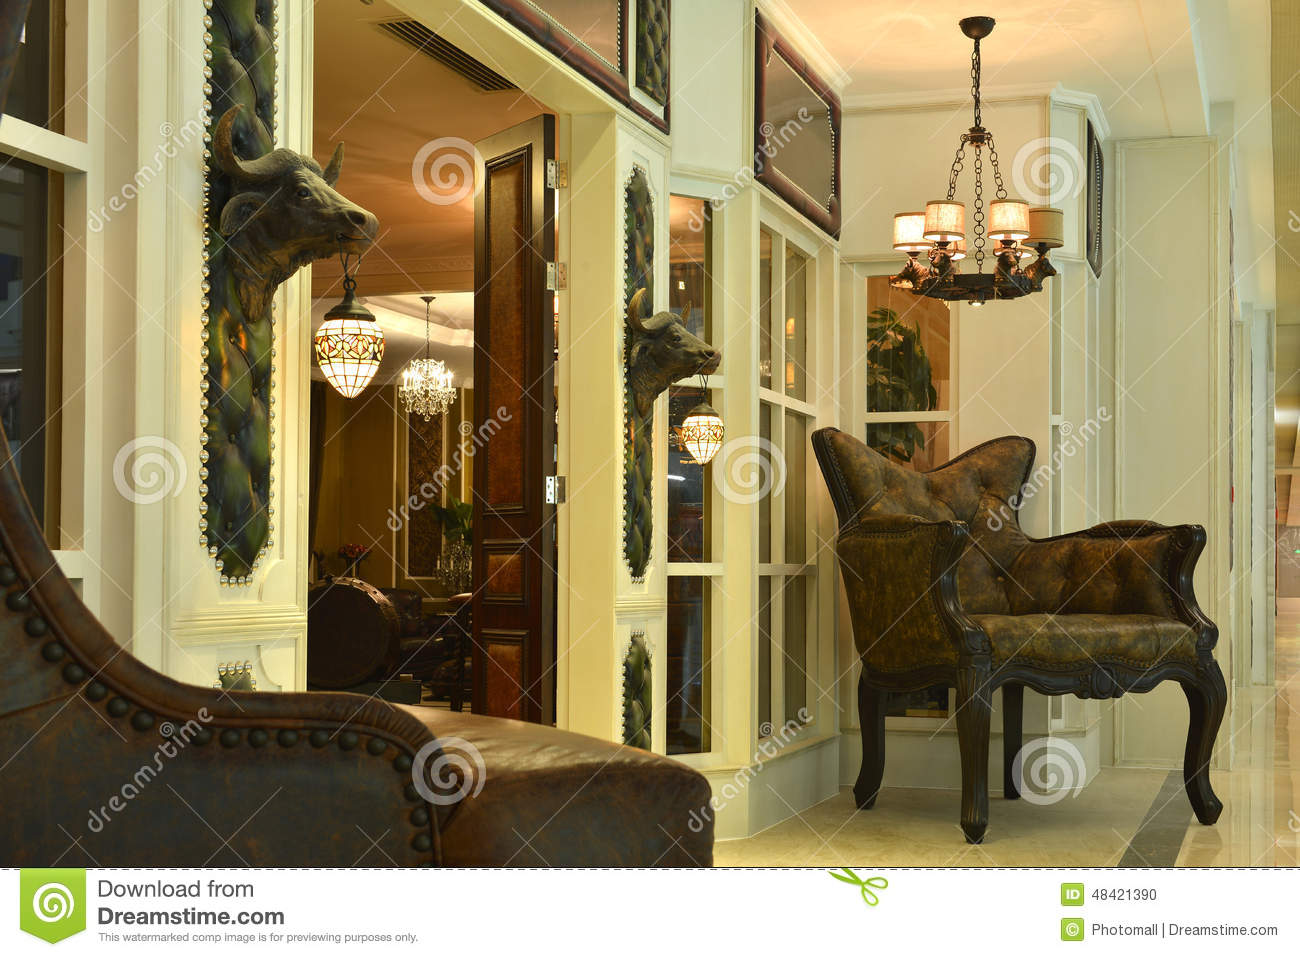 Front Door Of Luxury Villa At Night Stock Photo - Image of apartment ...